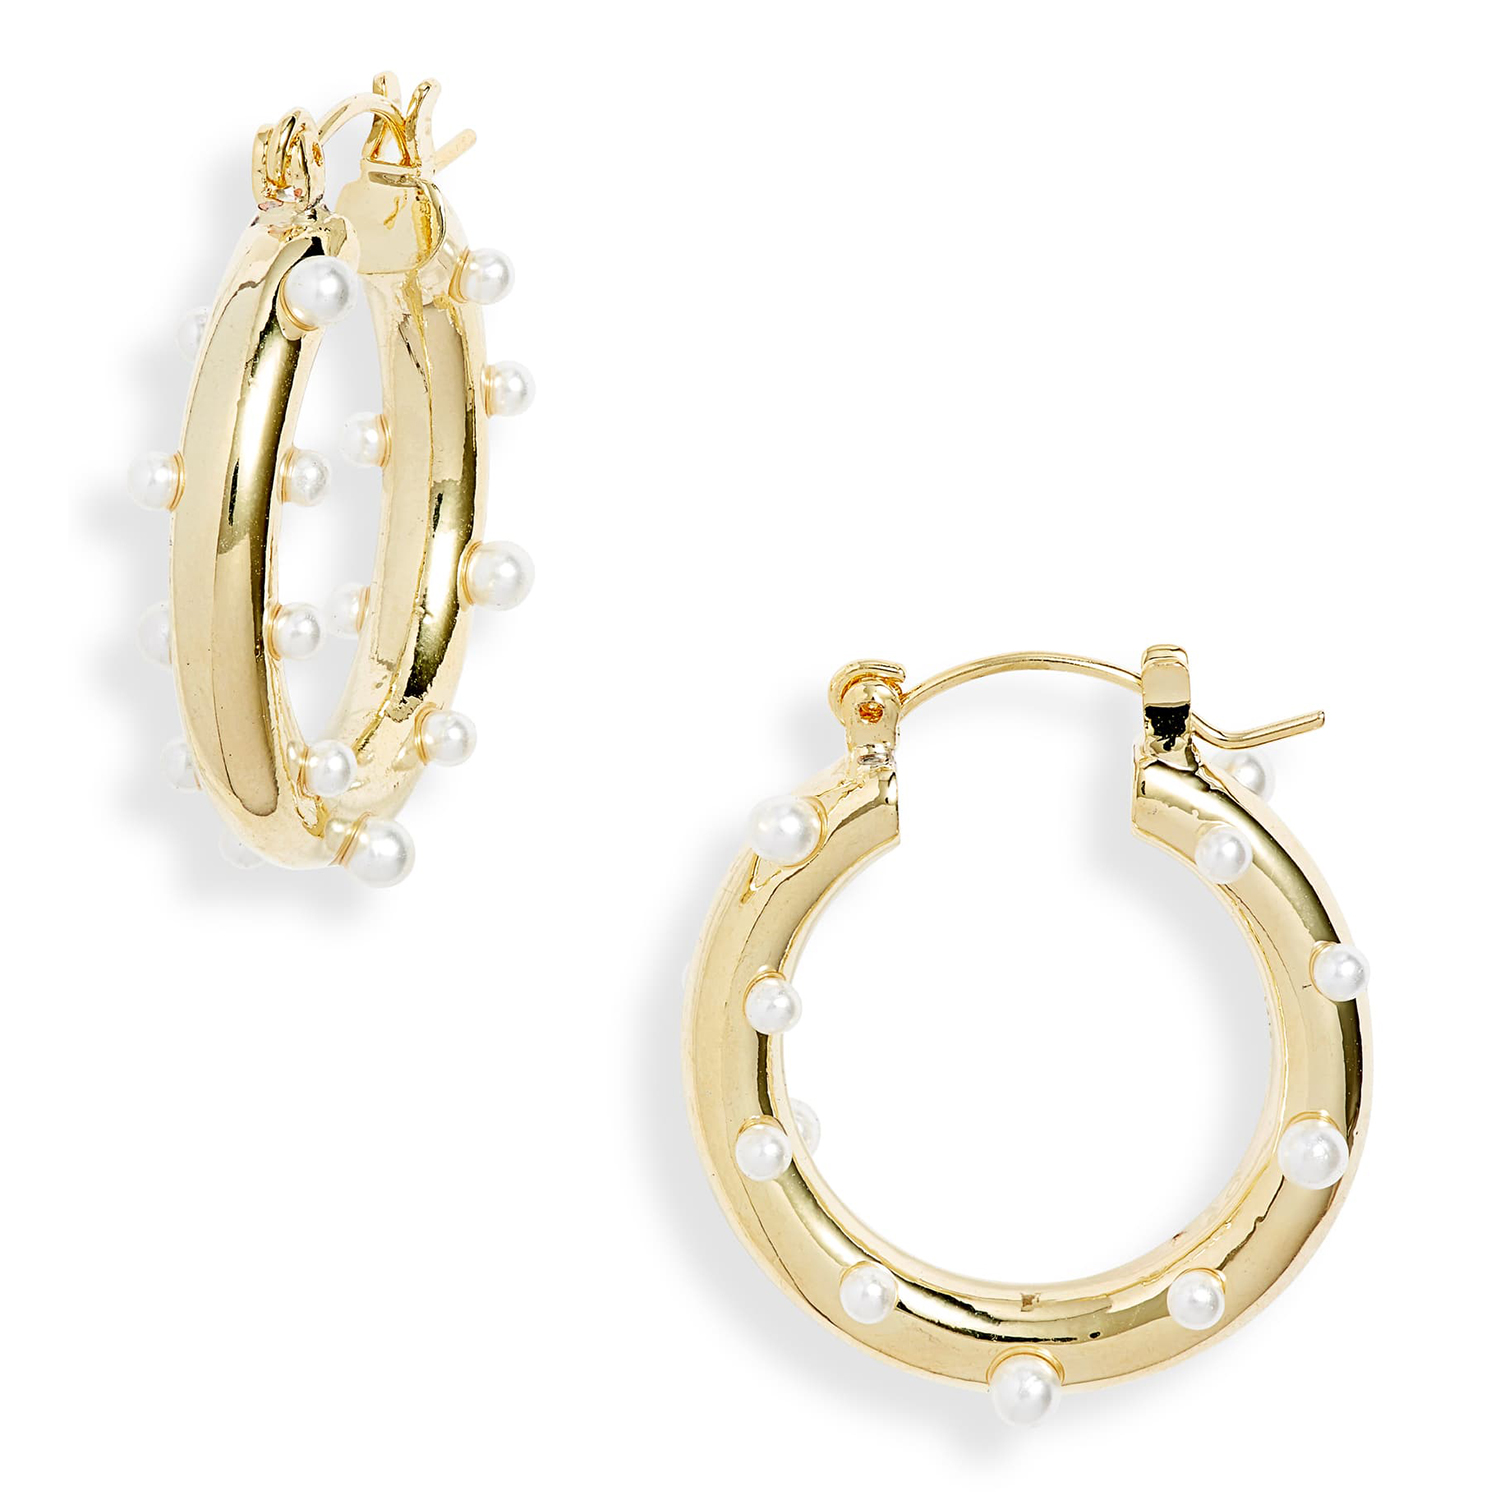 Ten79LA Imitation Pearl Hoop Earrings